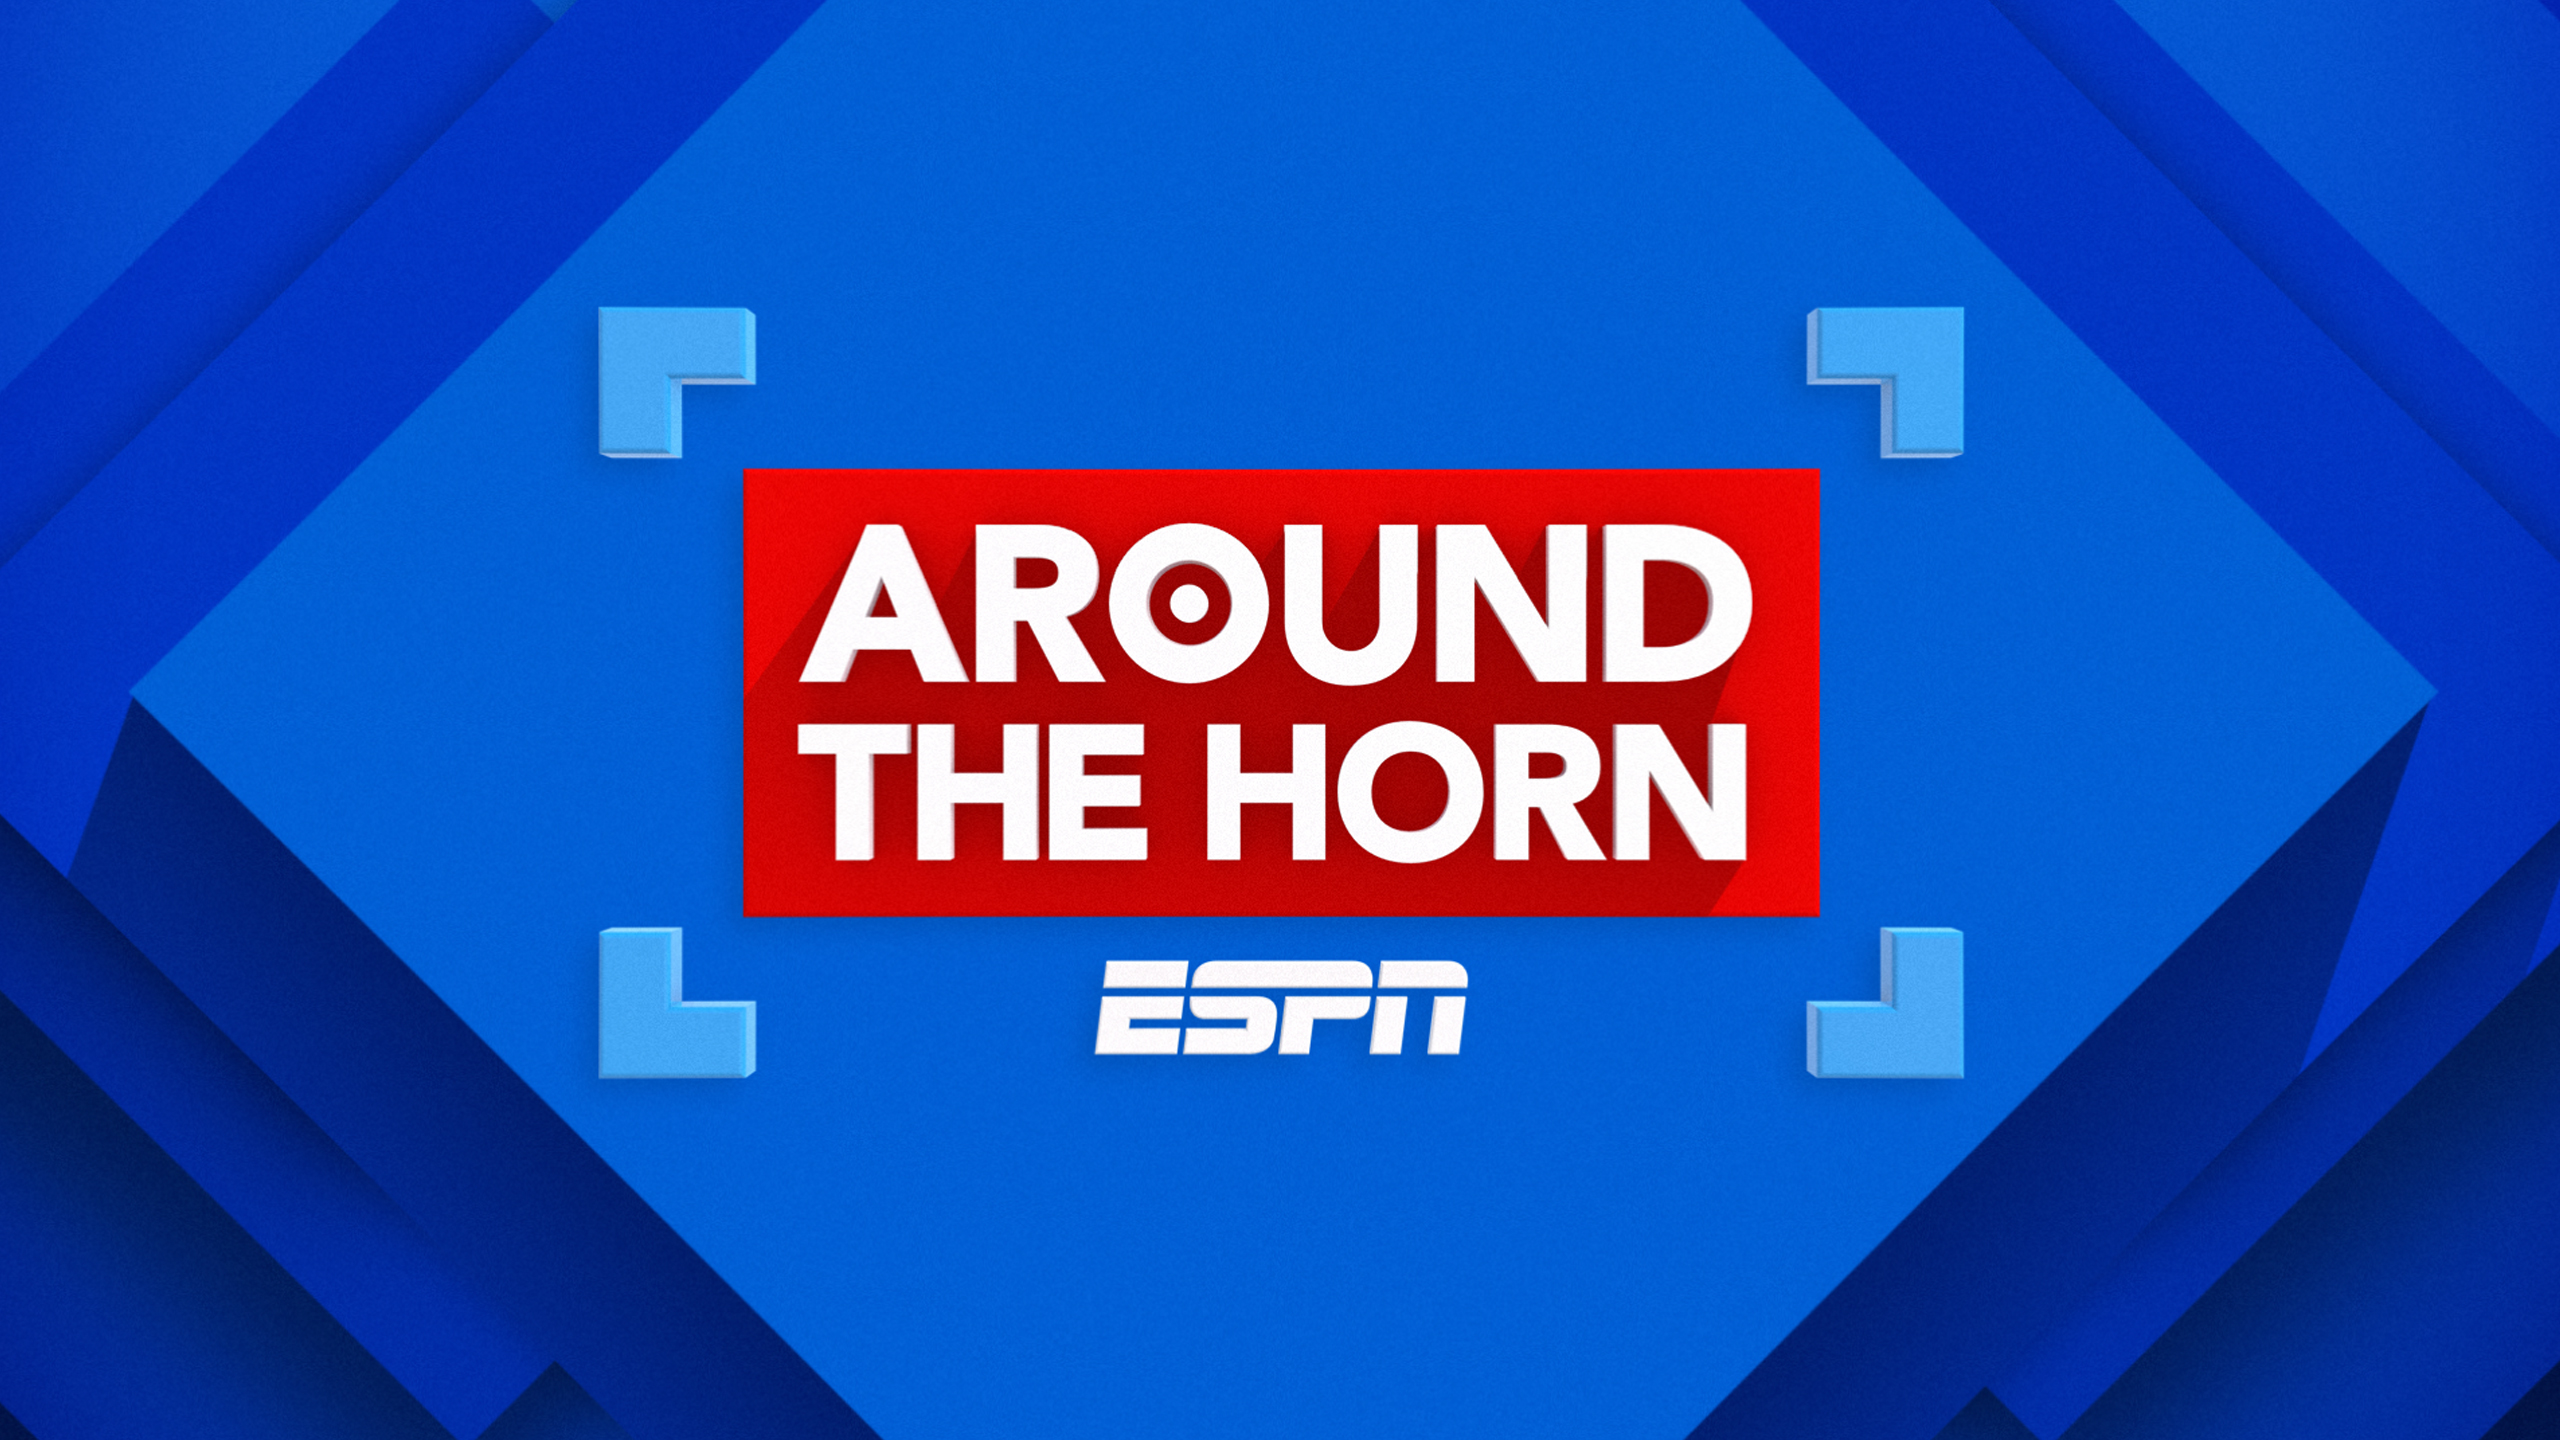 Mon, 12/17 - Around The Horn